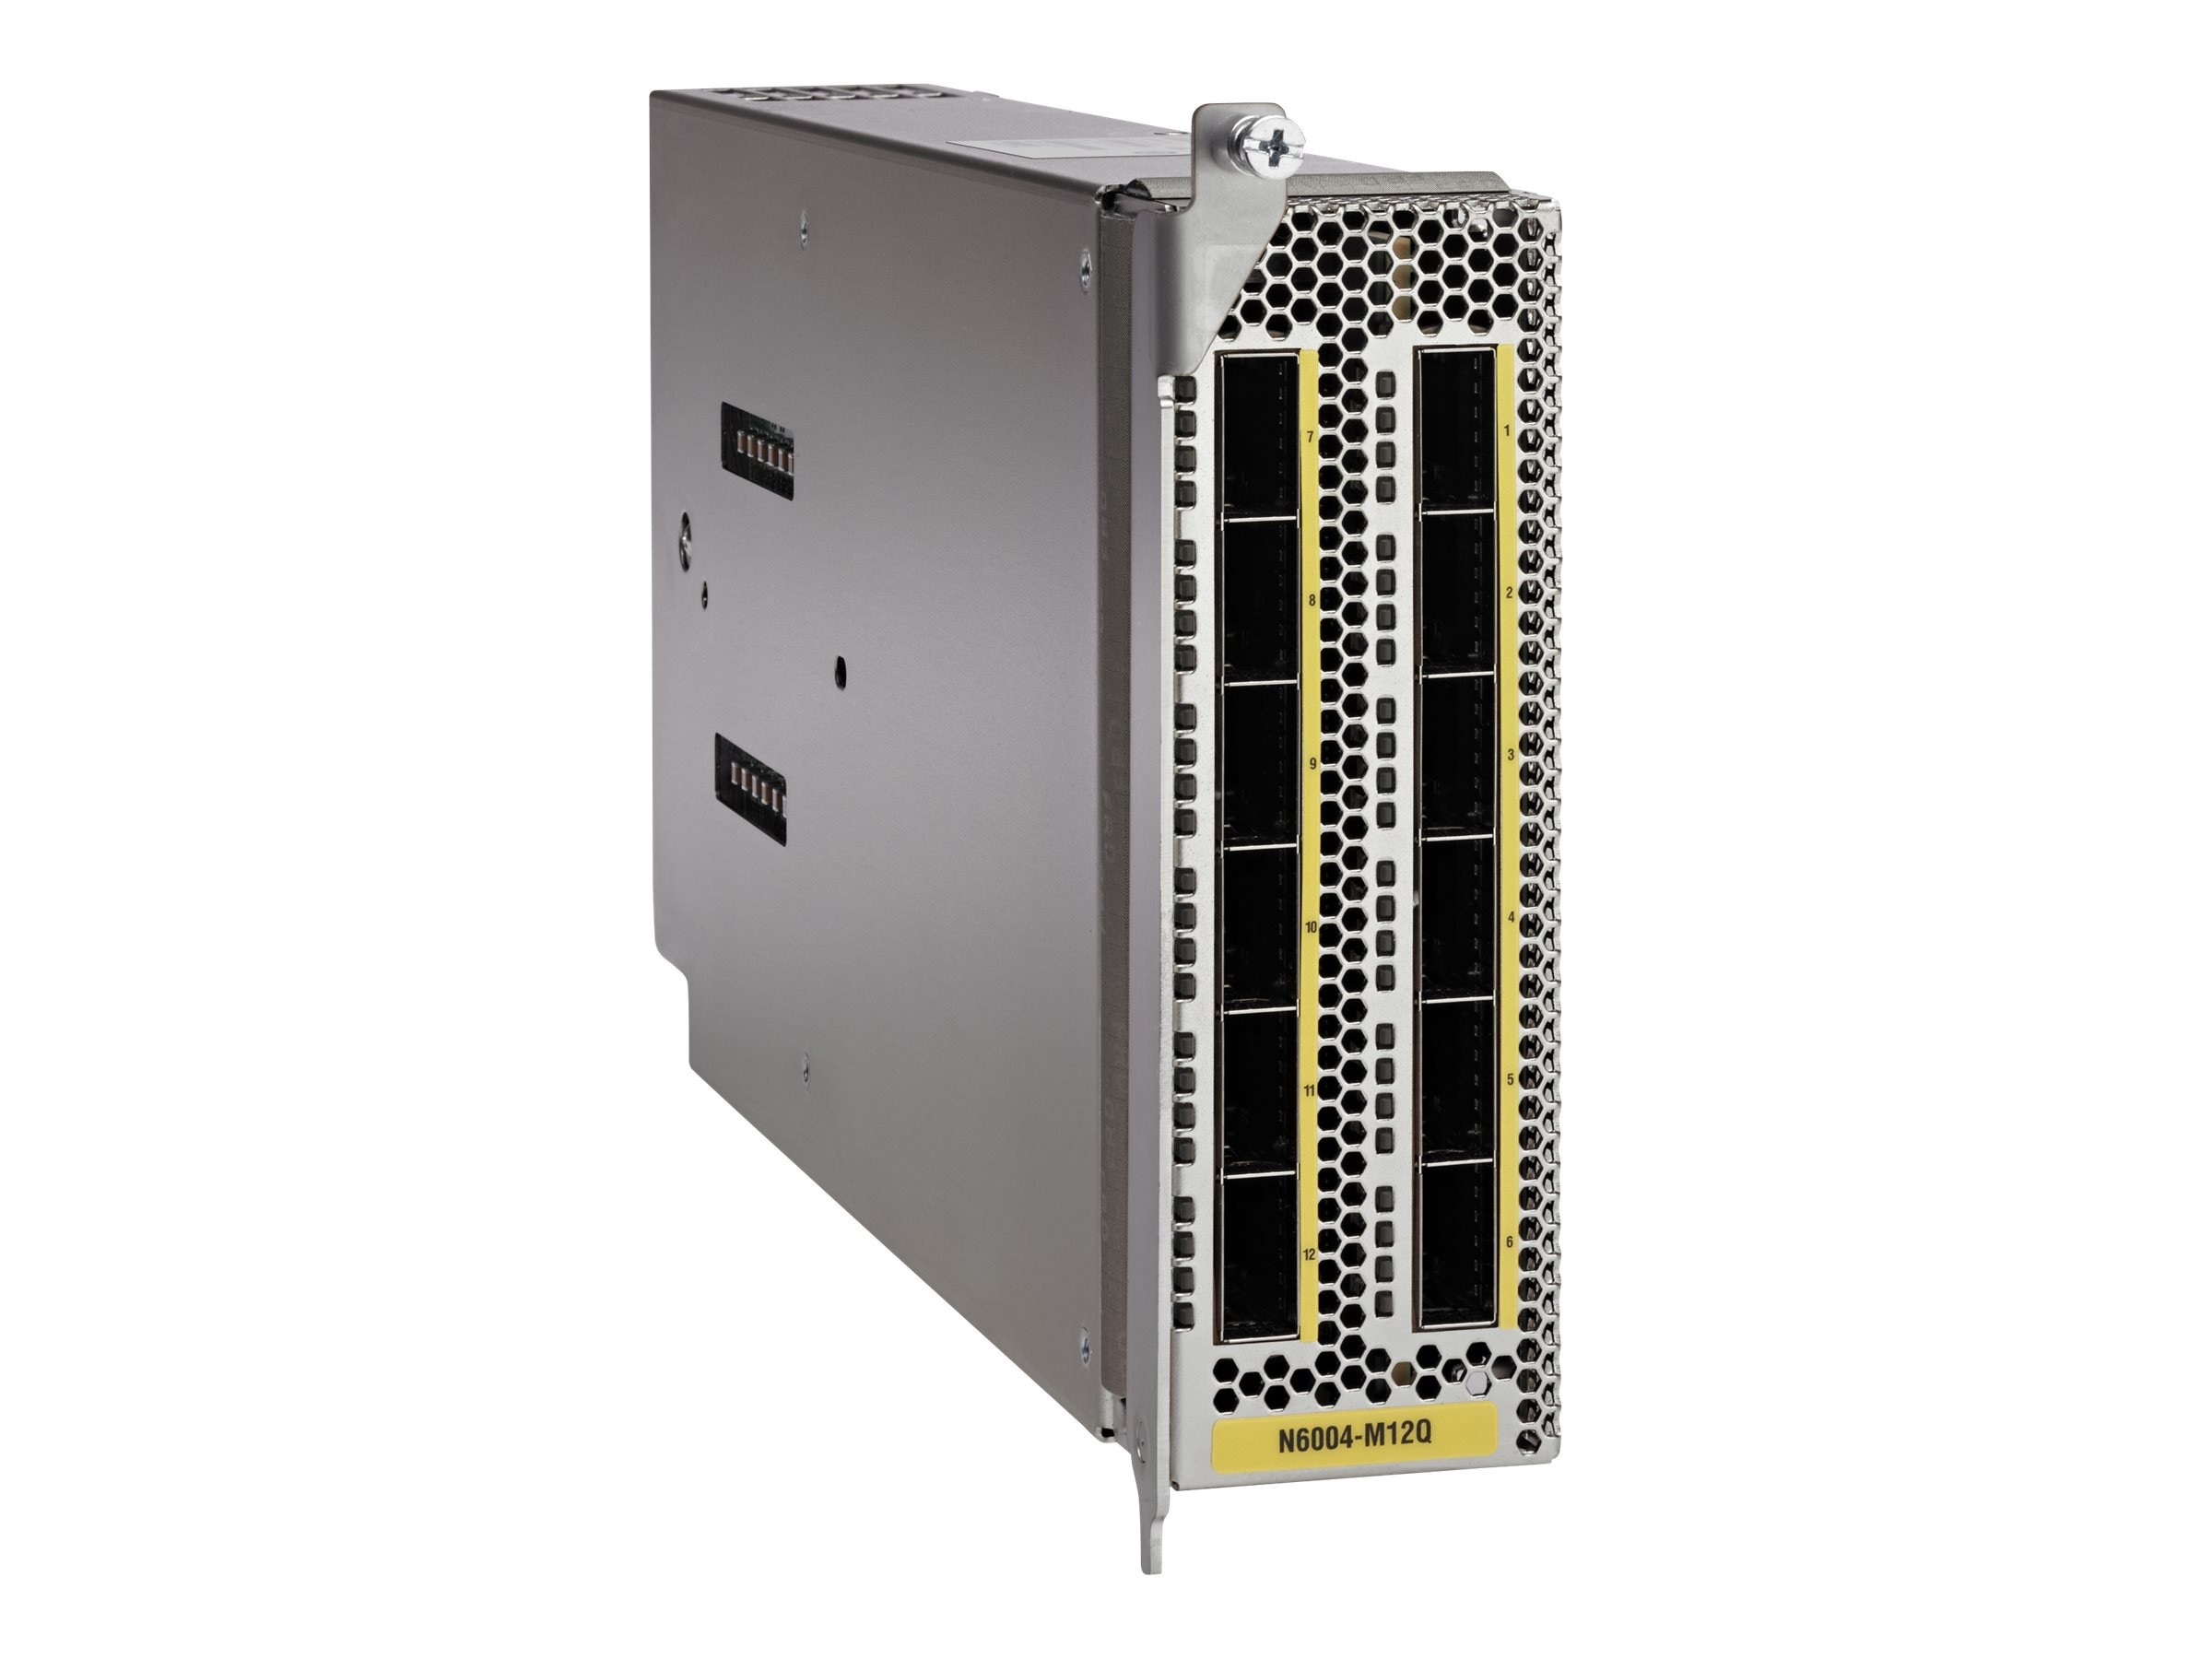 Cisco Nexus 6004 EF Chassis Module 12Q 40GE ETH FCOE, N6004-M12Q, 16443156, Network Device Modules & Accessories